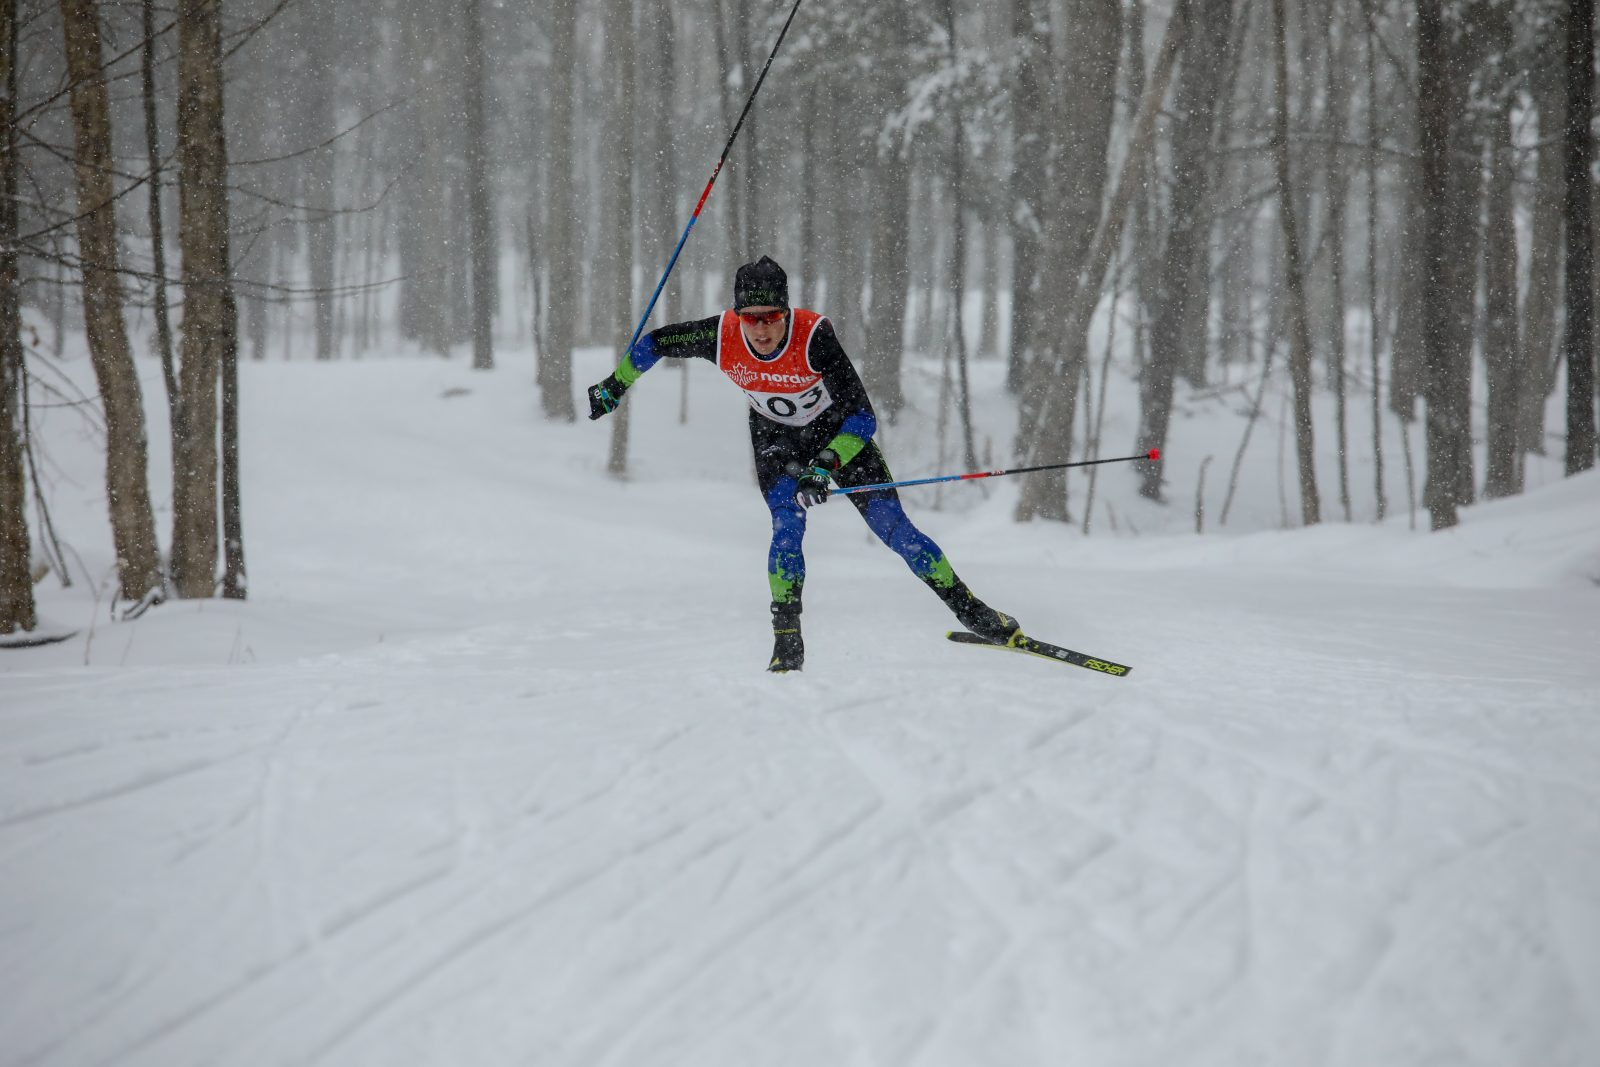 New winter activity for high school students at Summerstown Trails